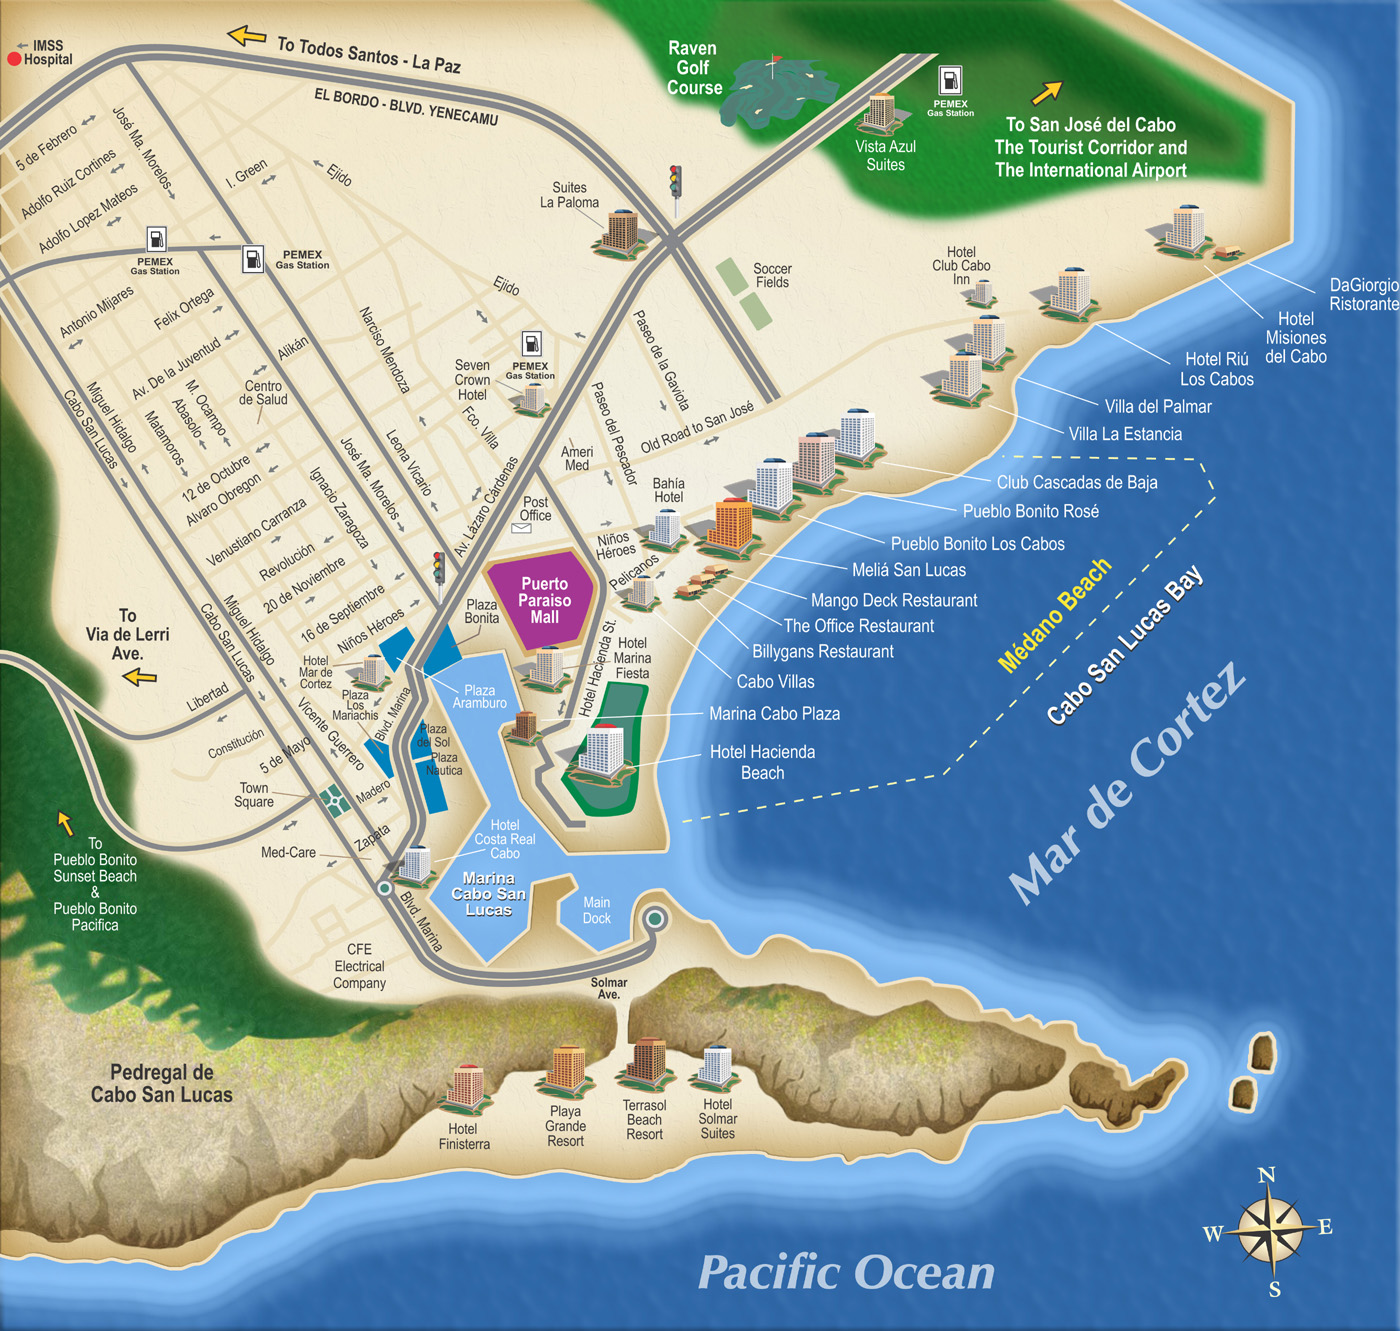 Cabo San Lucas Marina Cabo San Lucas Hotel Map Locations on disney world hotel map locations, jamaica hotel map locations, london hotel map locations, key west hotel map locations, punta cana hotel map locations, las vegas hotel map locations, isla mujeres hotel map locations, grand cayman hotel map locations, mayan riviera hotel map locations,